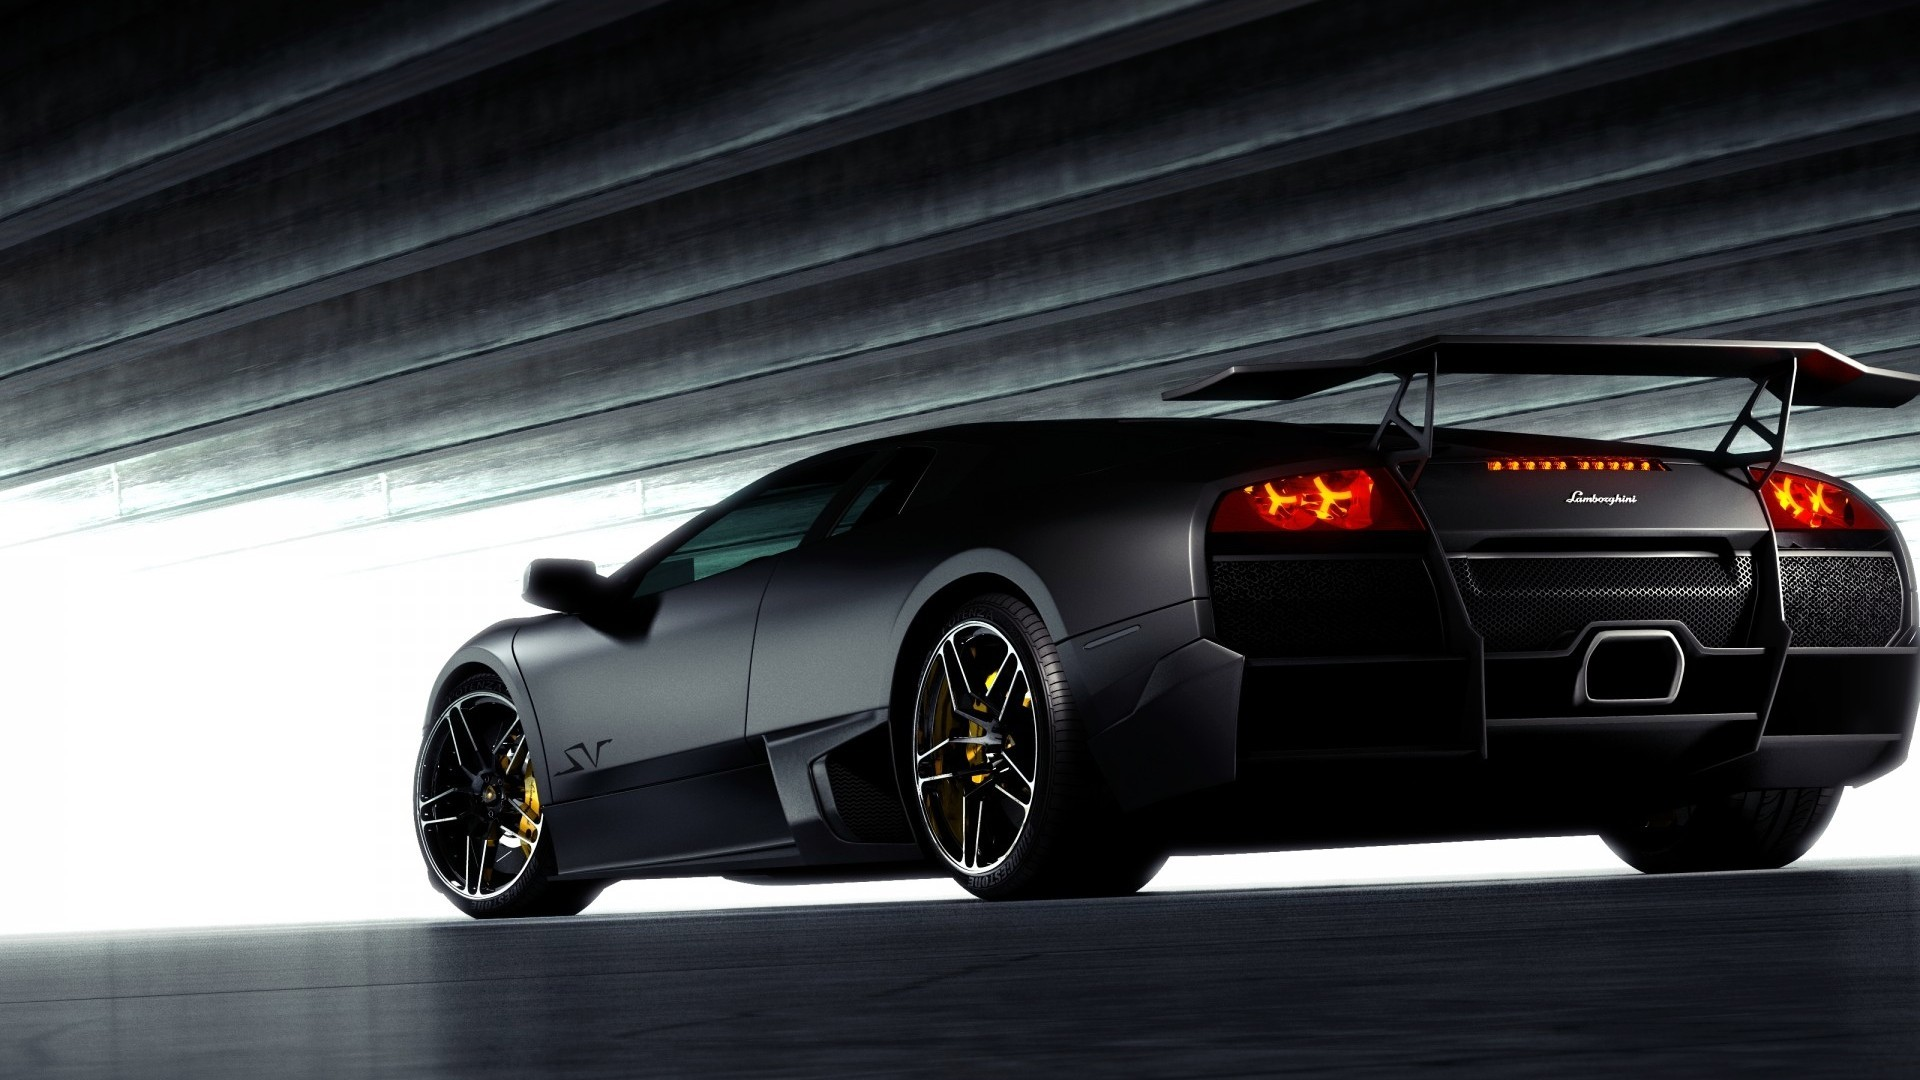 Amazing car hd wallpapers 1080p With HD Wallpaper HD 1366×768 with car hd wallpapers  1080p Download